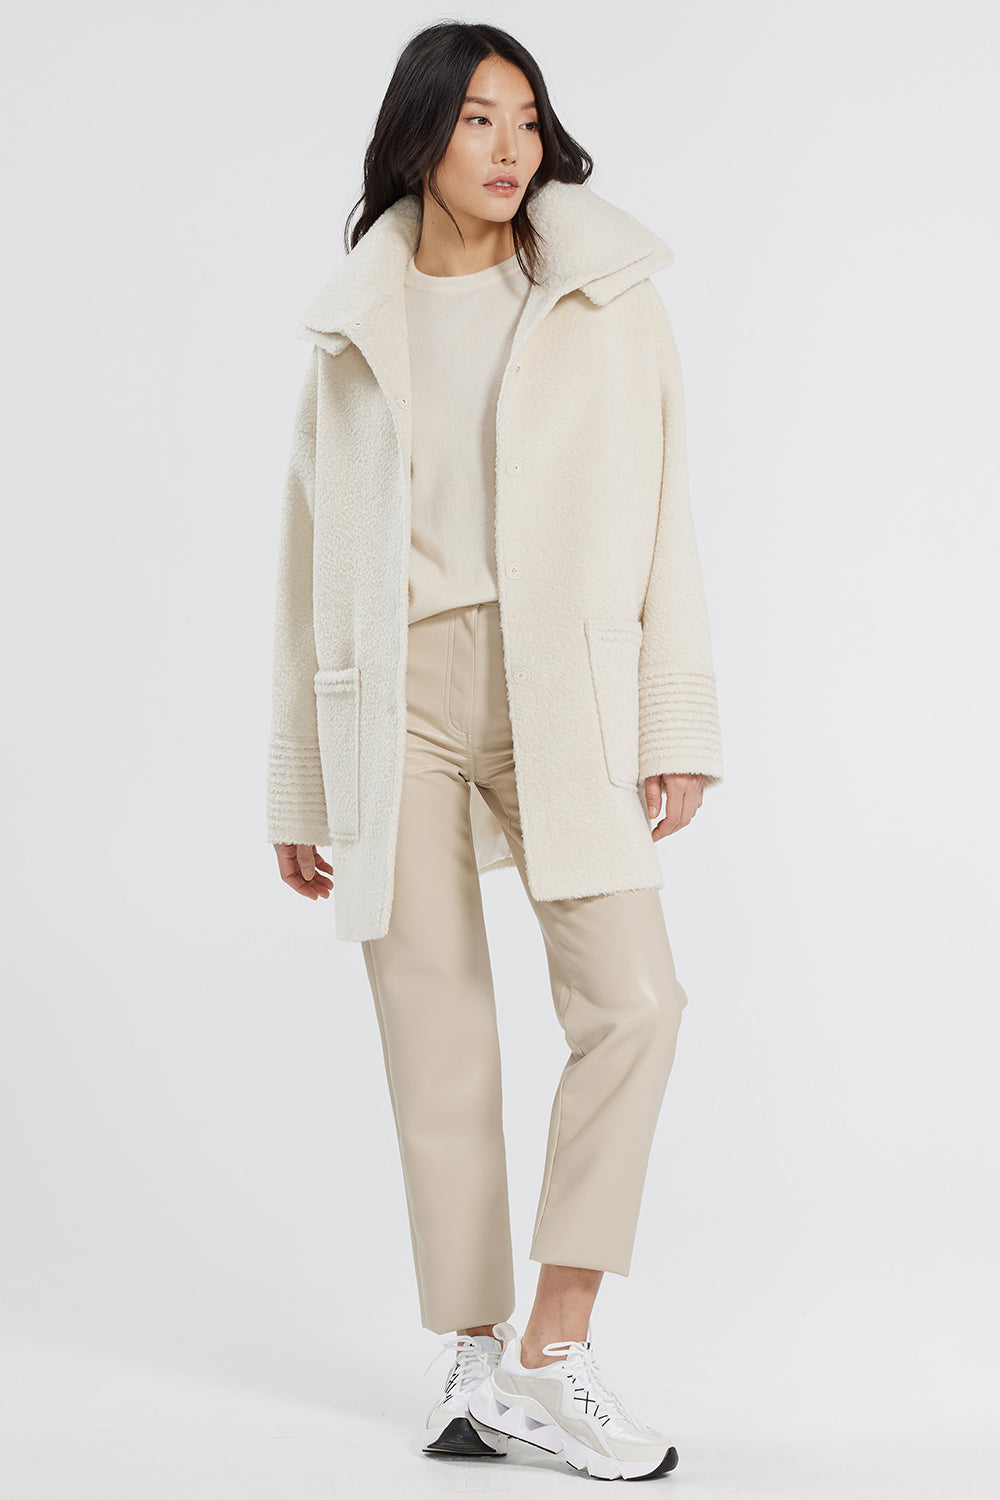 Sentaler Bouclé Alpaca Mid Length Oversized Coat with Signature Double Collar featured in Bouclé Alpaca and available in Ivory. Seen open.